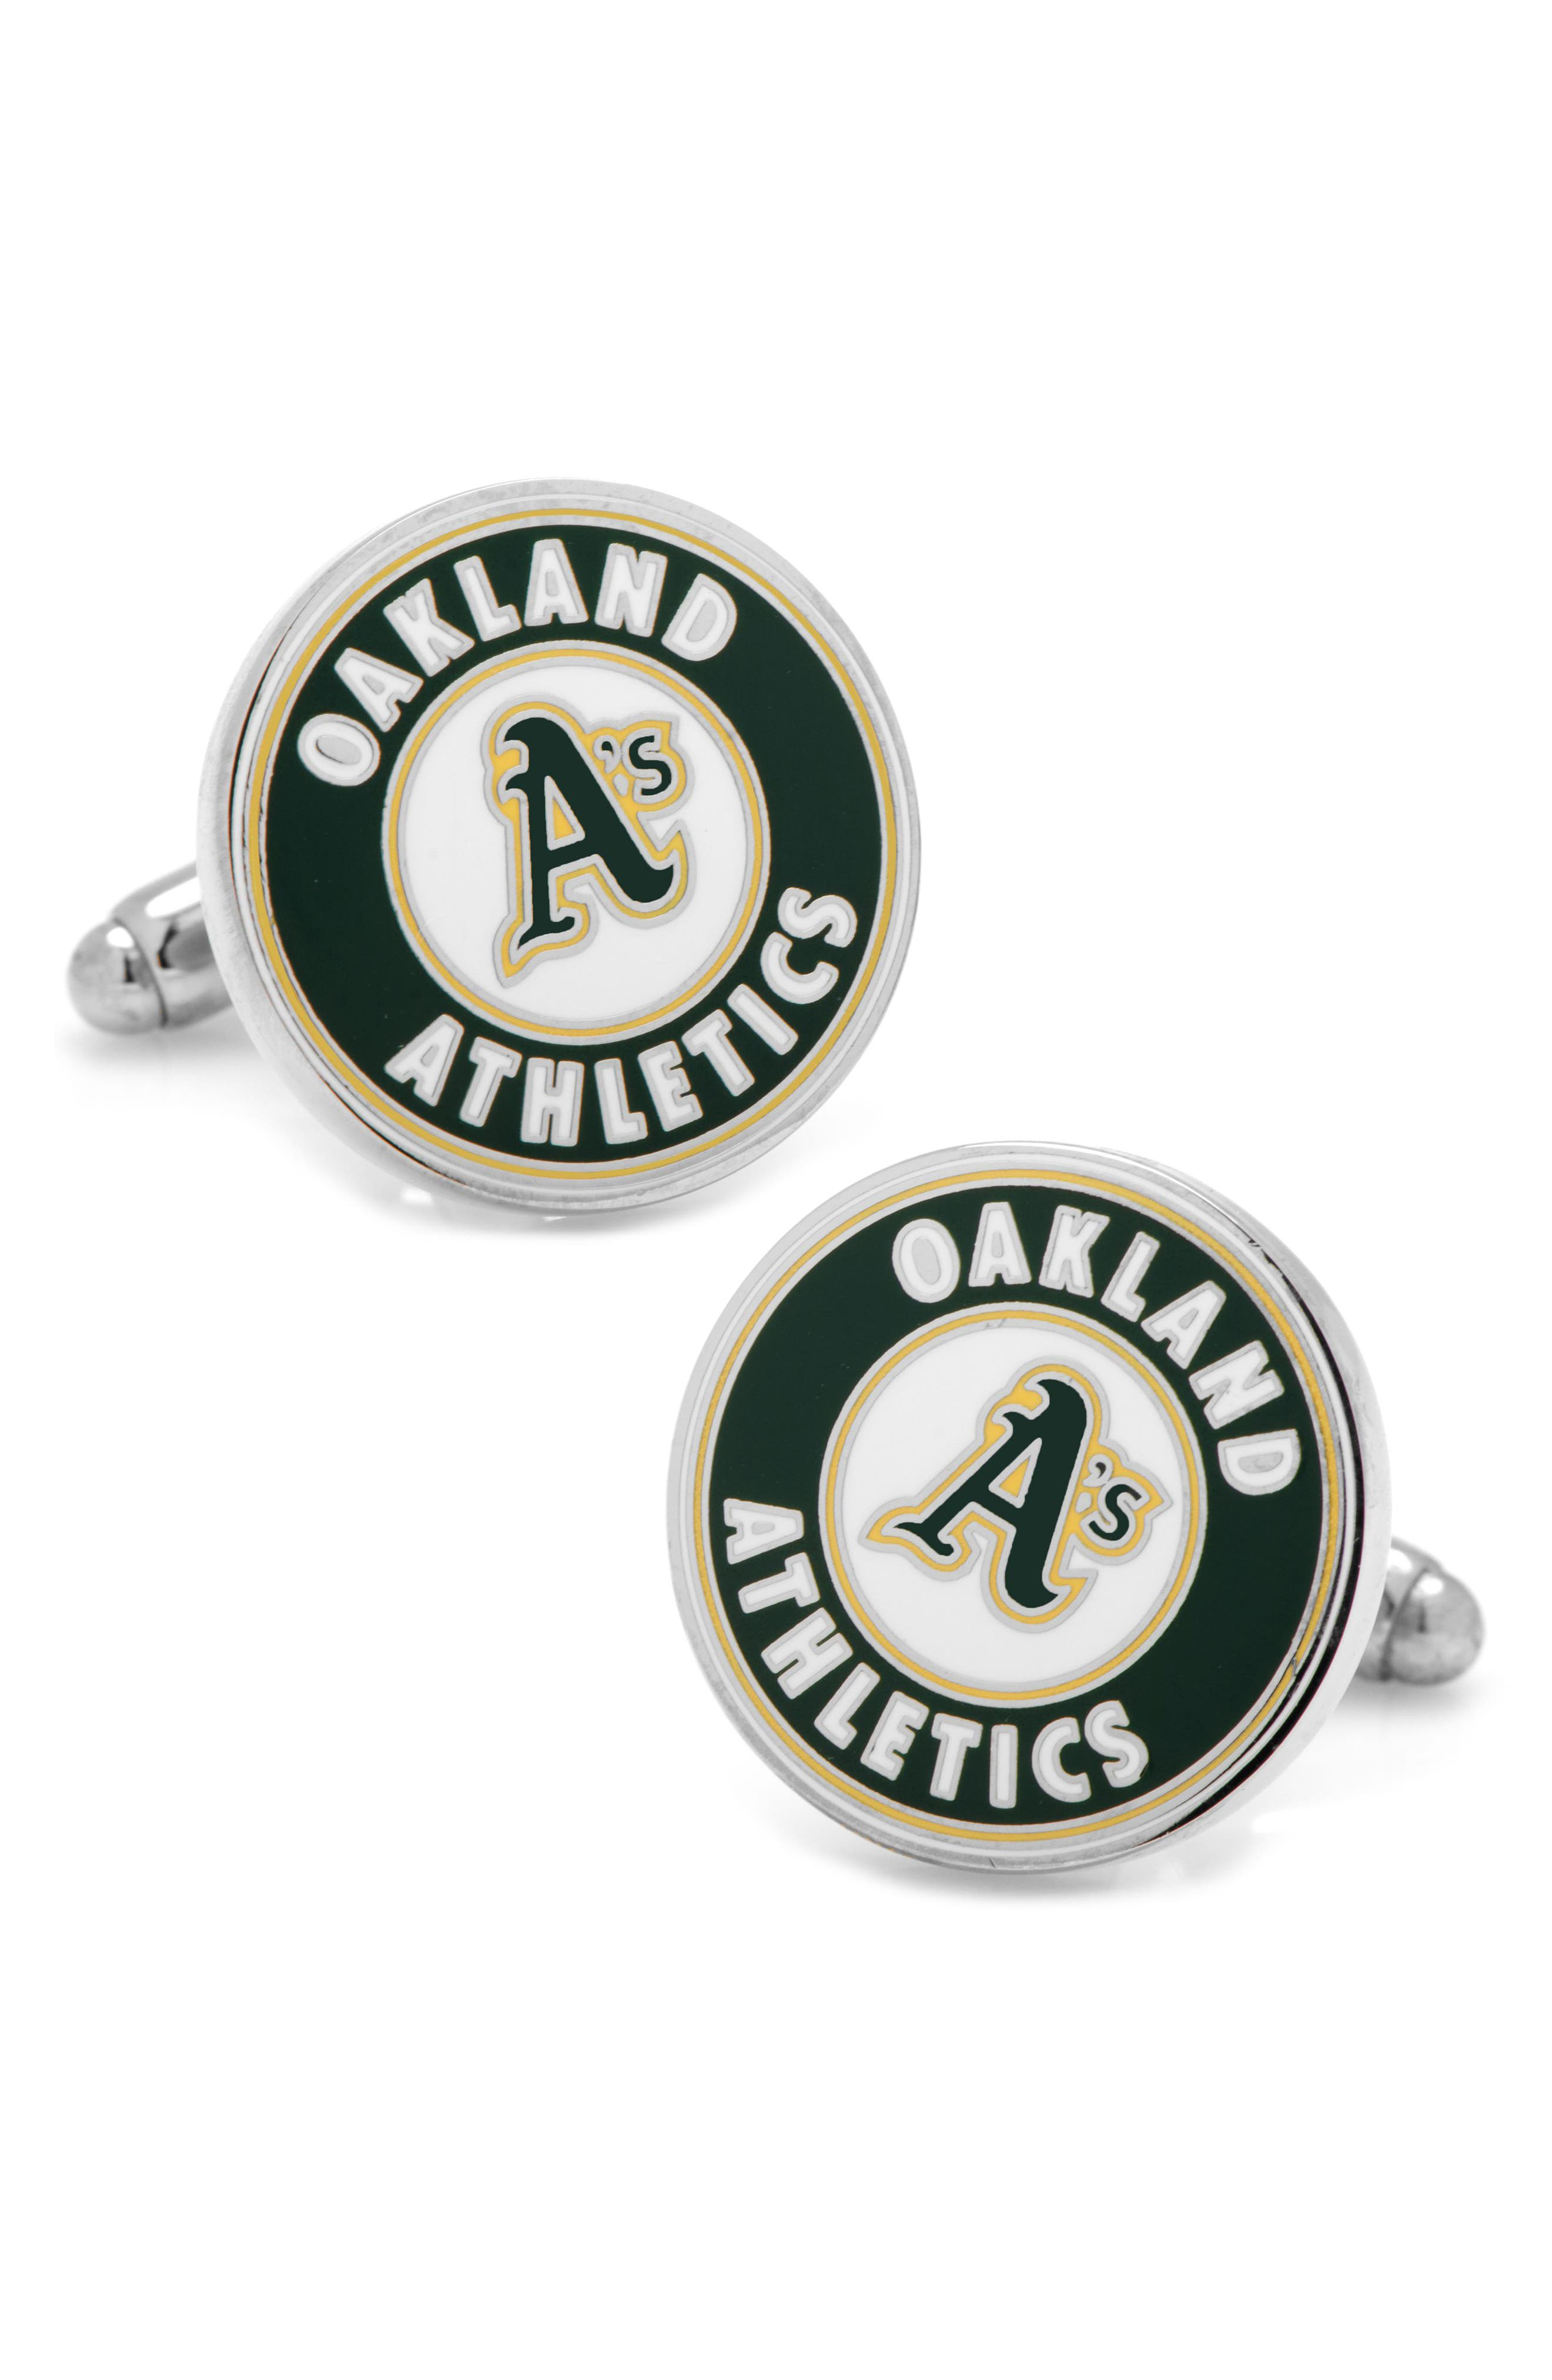 Oakland Athletics Cuff Links,                         Main,                         color, Green